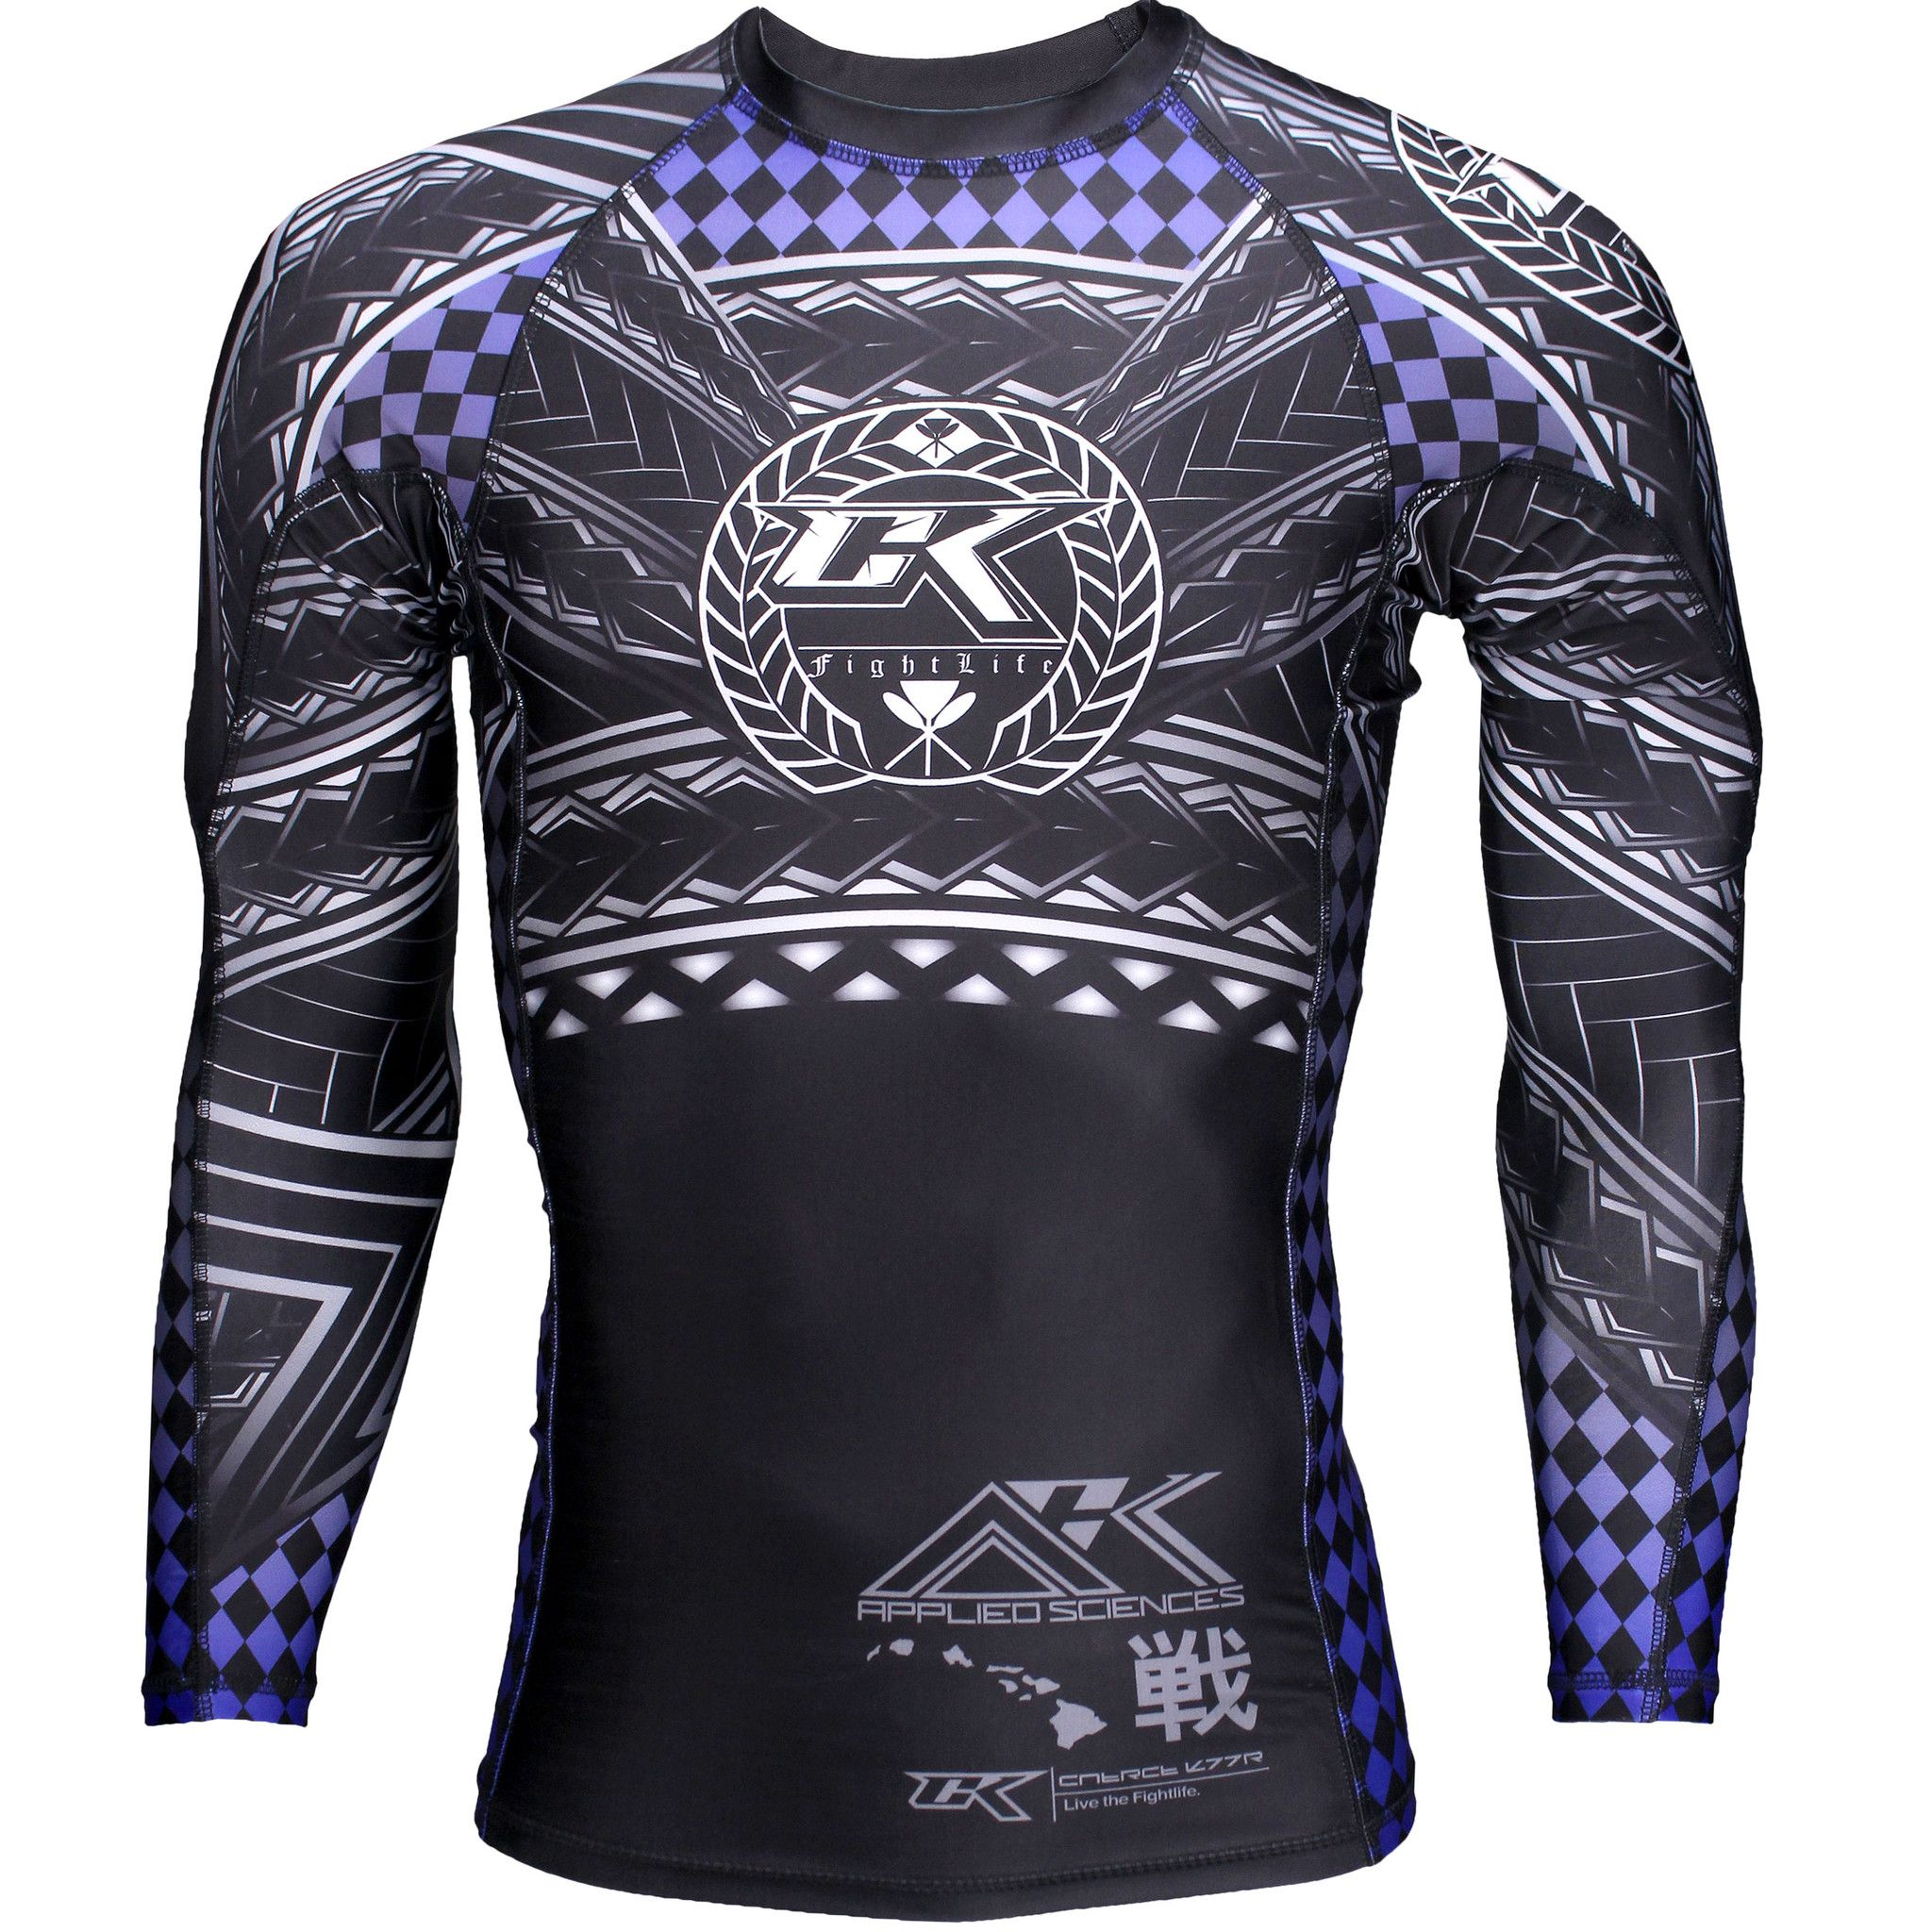 Raven Fightwear Men/'s Horsemen of the Apocalypse War Samurai Rash Guard